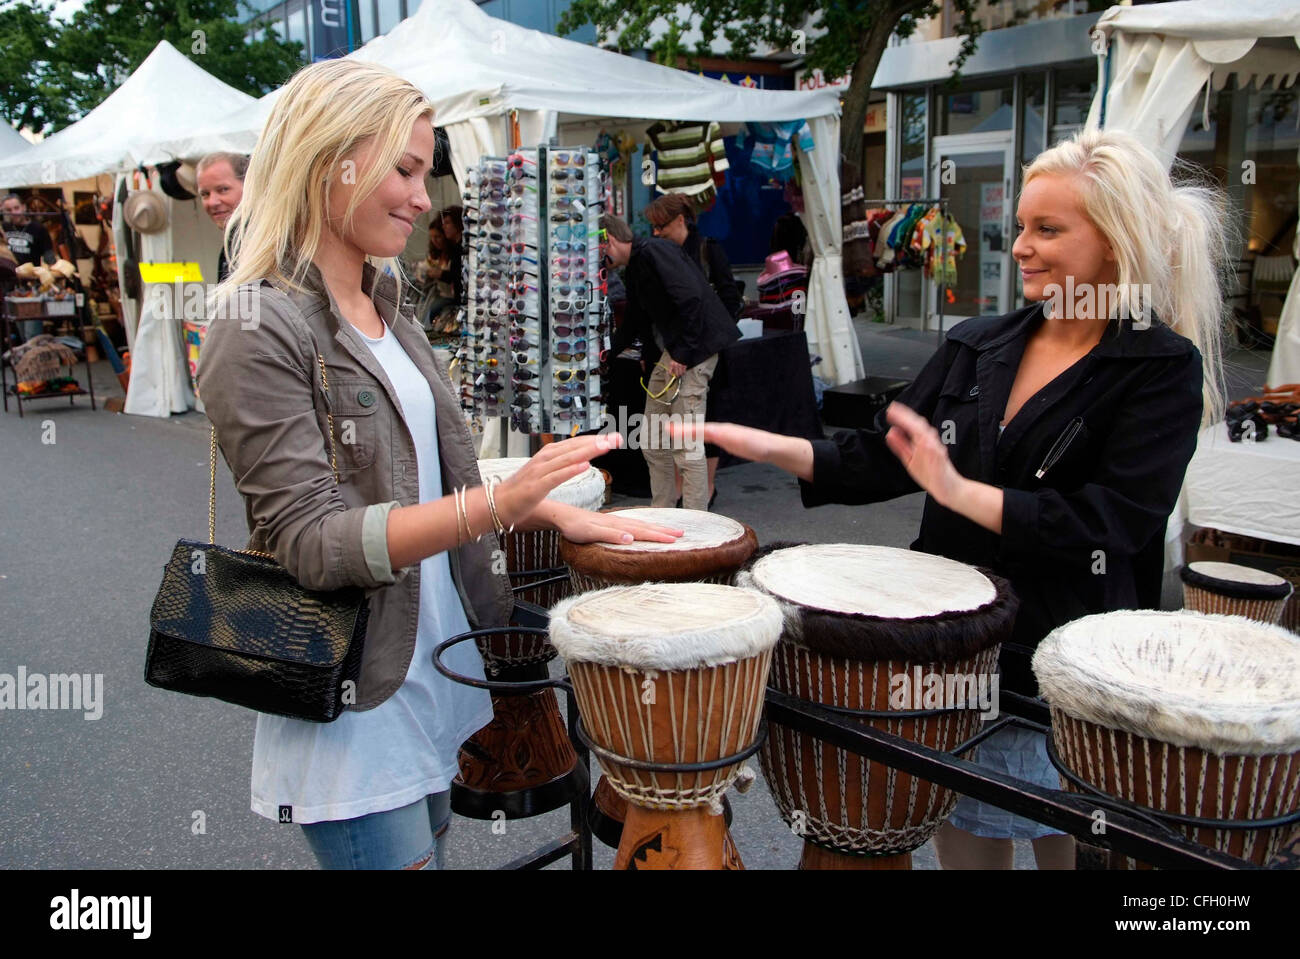 NORWAY Molde young blonde Norwegian women try out African drums in Molde market - Stock Image